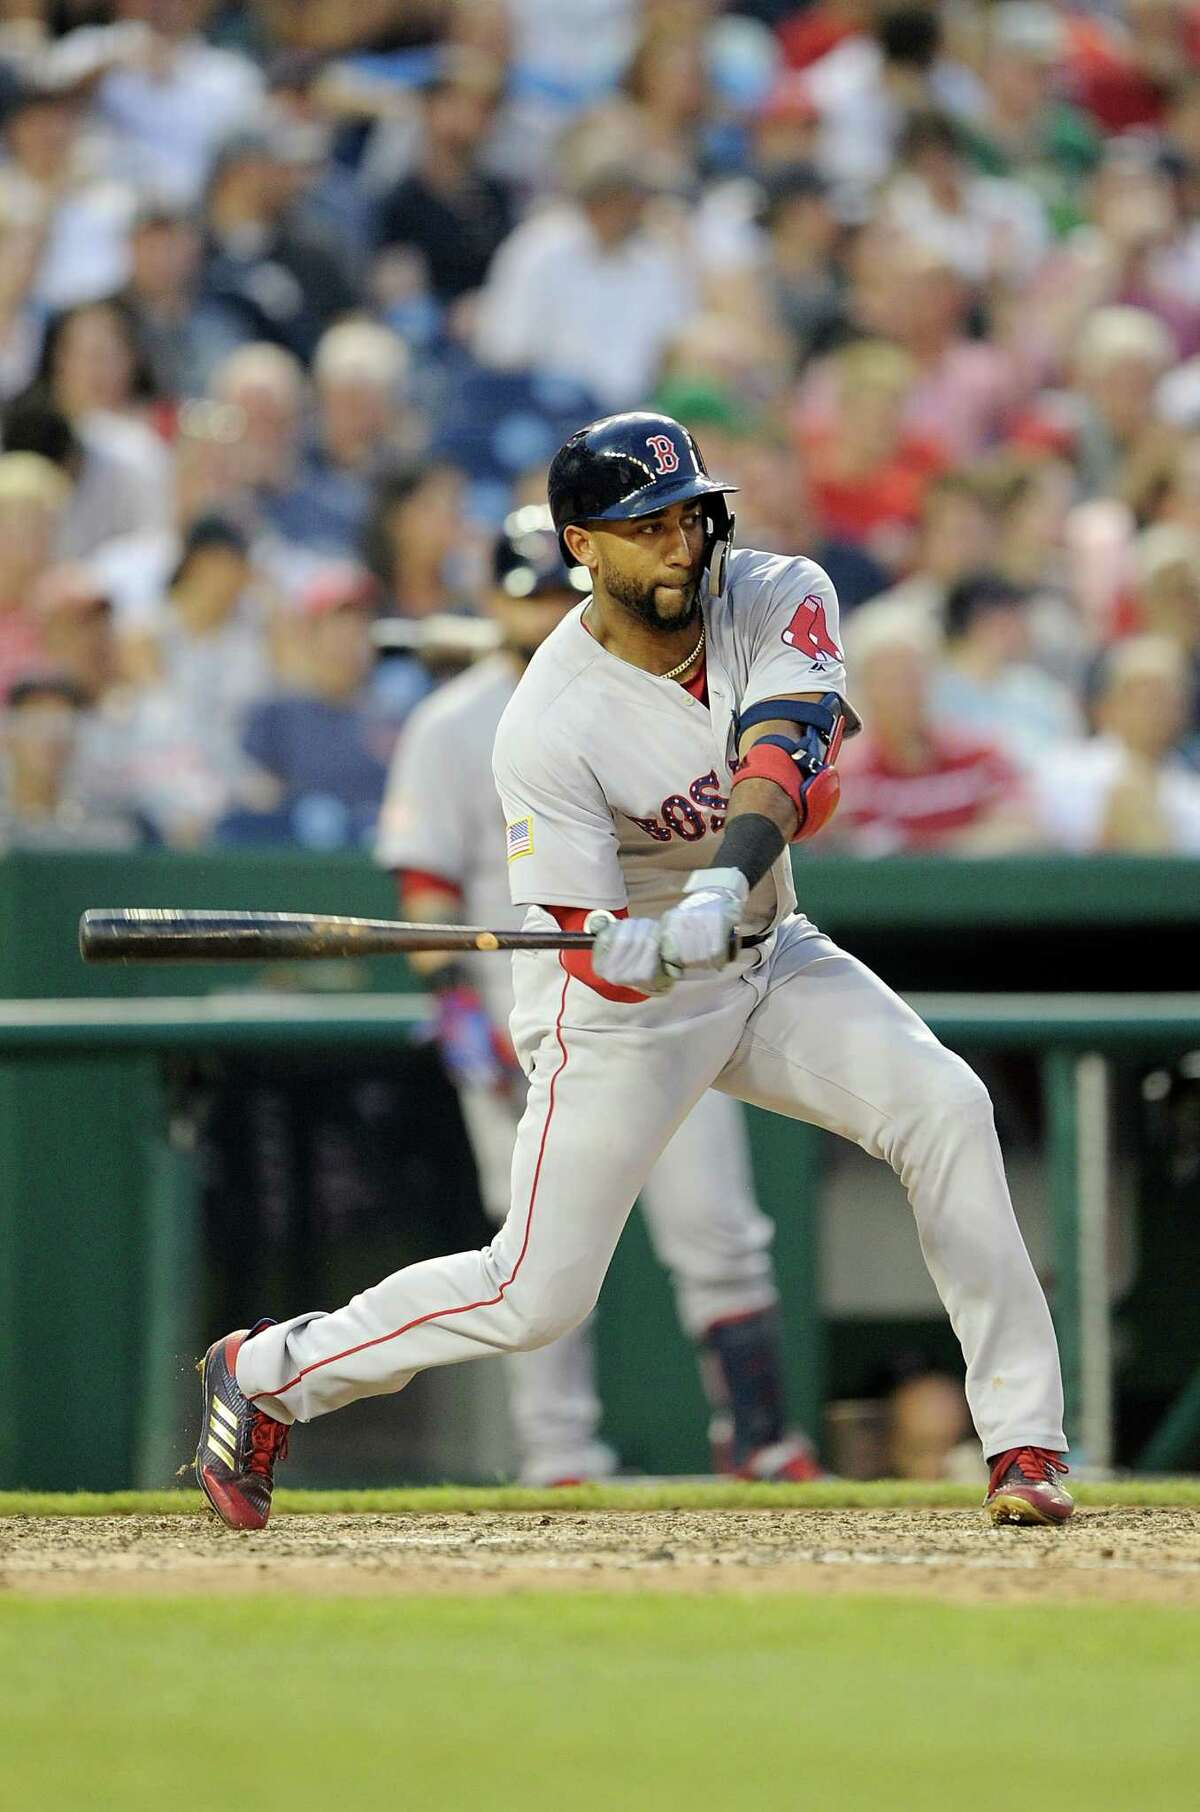 WASHINGTON, DC - JULY 03: Eduardo Nunez #36 of the Boston Red Sox hits a double in the eighth inning against the Washington Nationals at Nationals Park on July 3, 2018 in Washington, DC. (Photo by Greg Fiume/Getty Images)